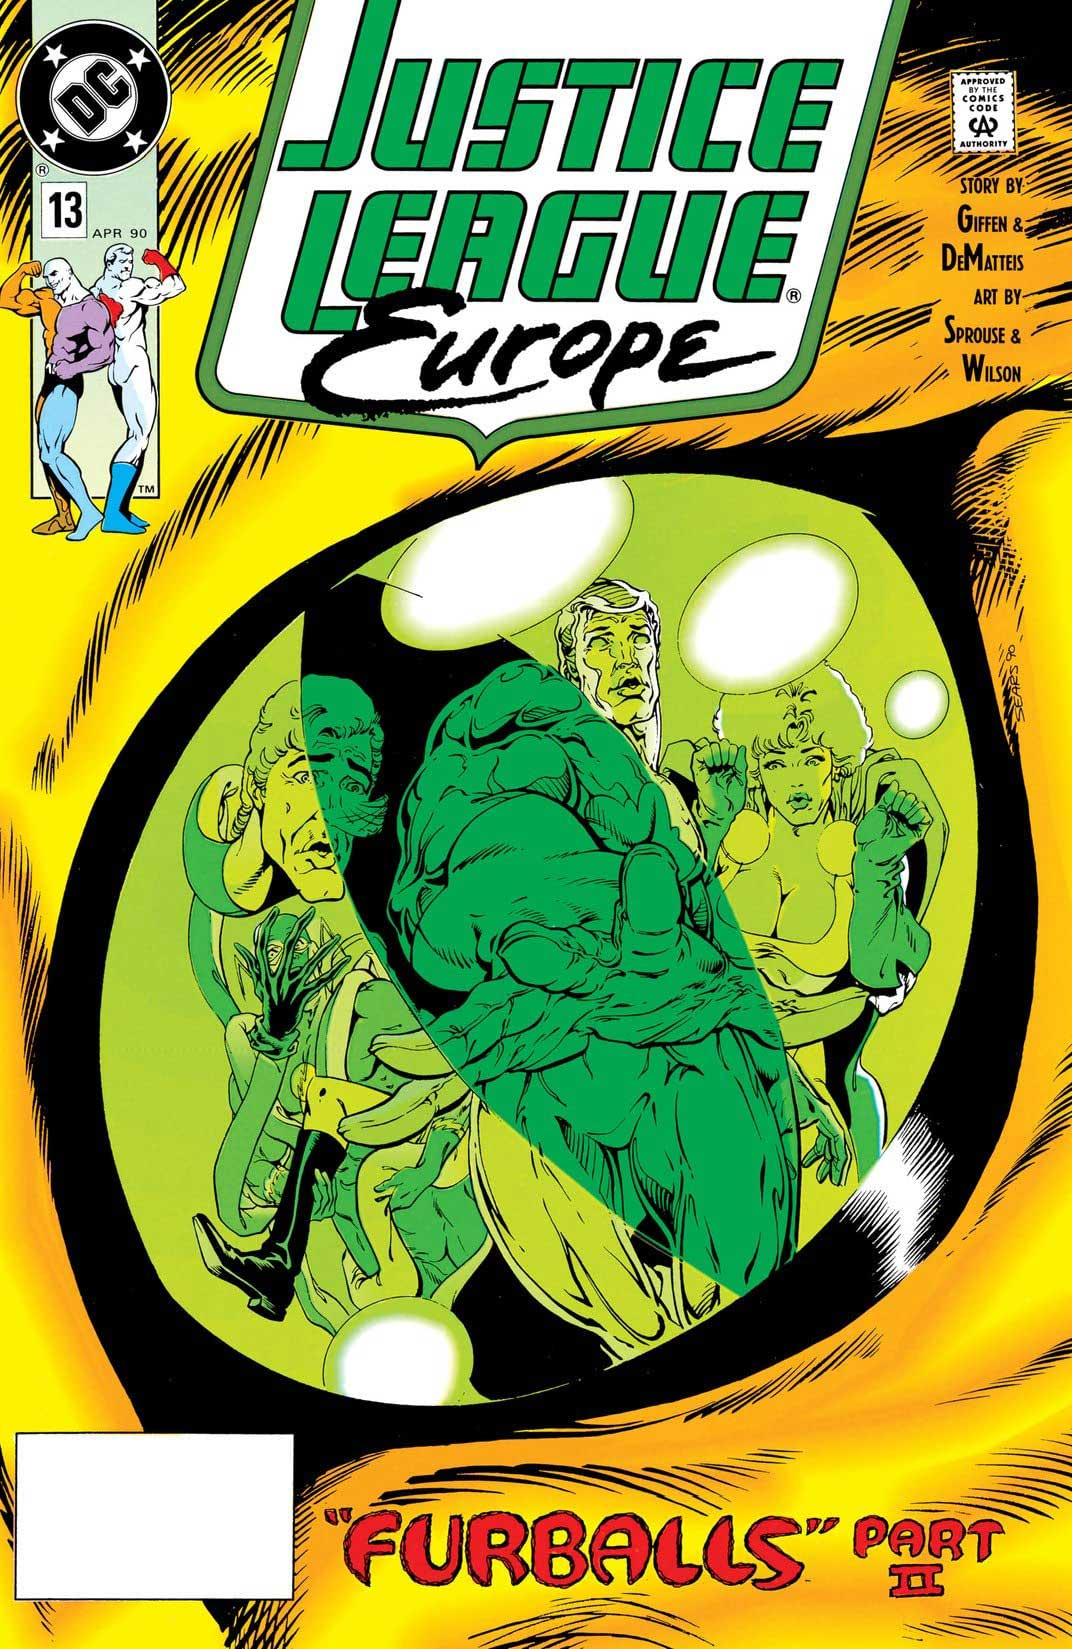 Justice League Europe #13 cover by Bart Sears